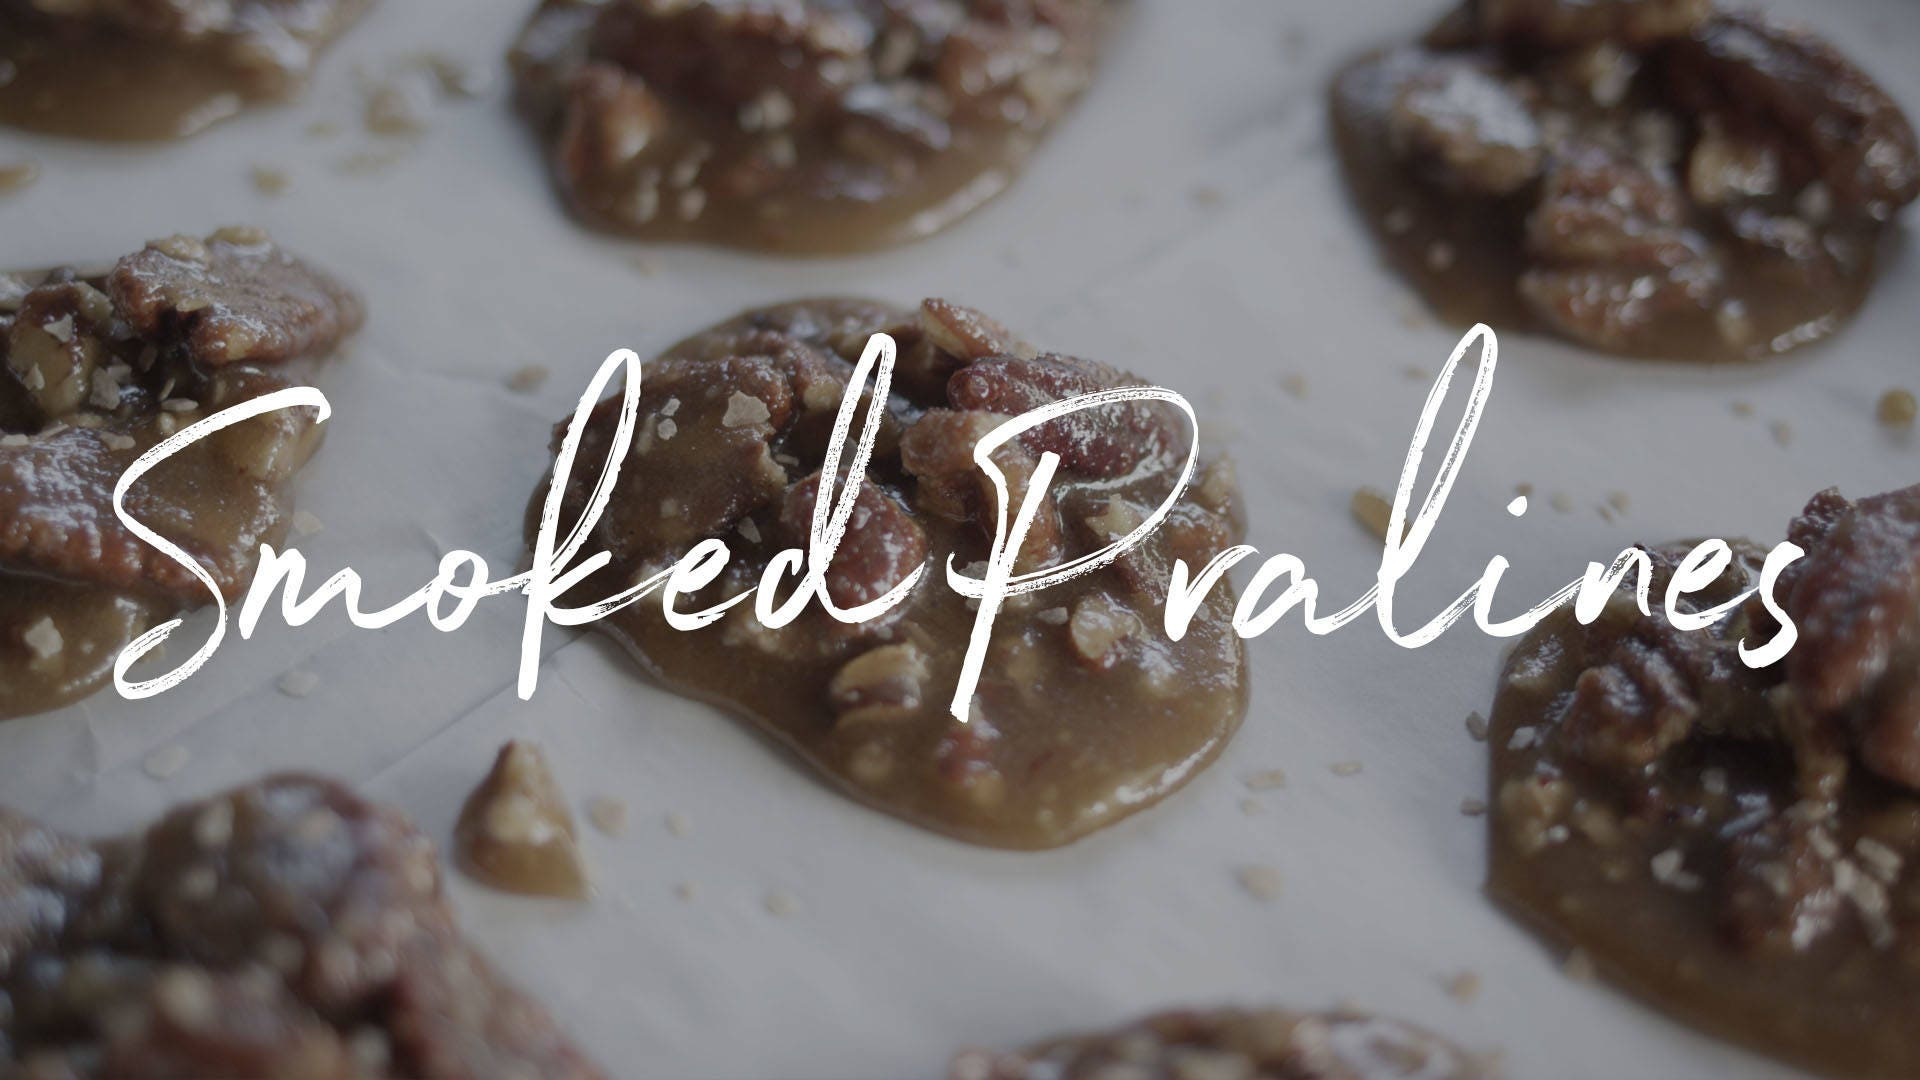 Smoked Pecan Pralines Recipe